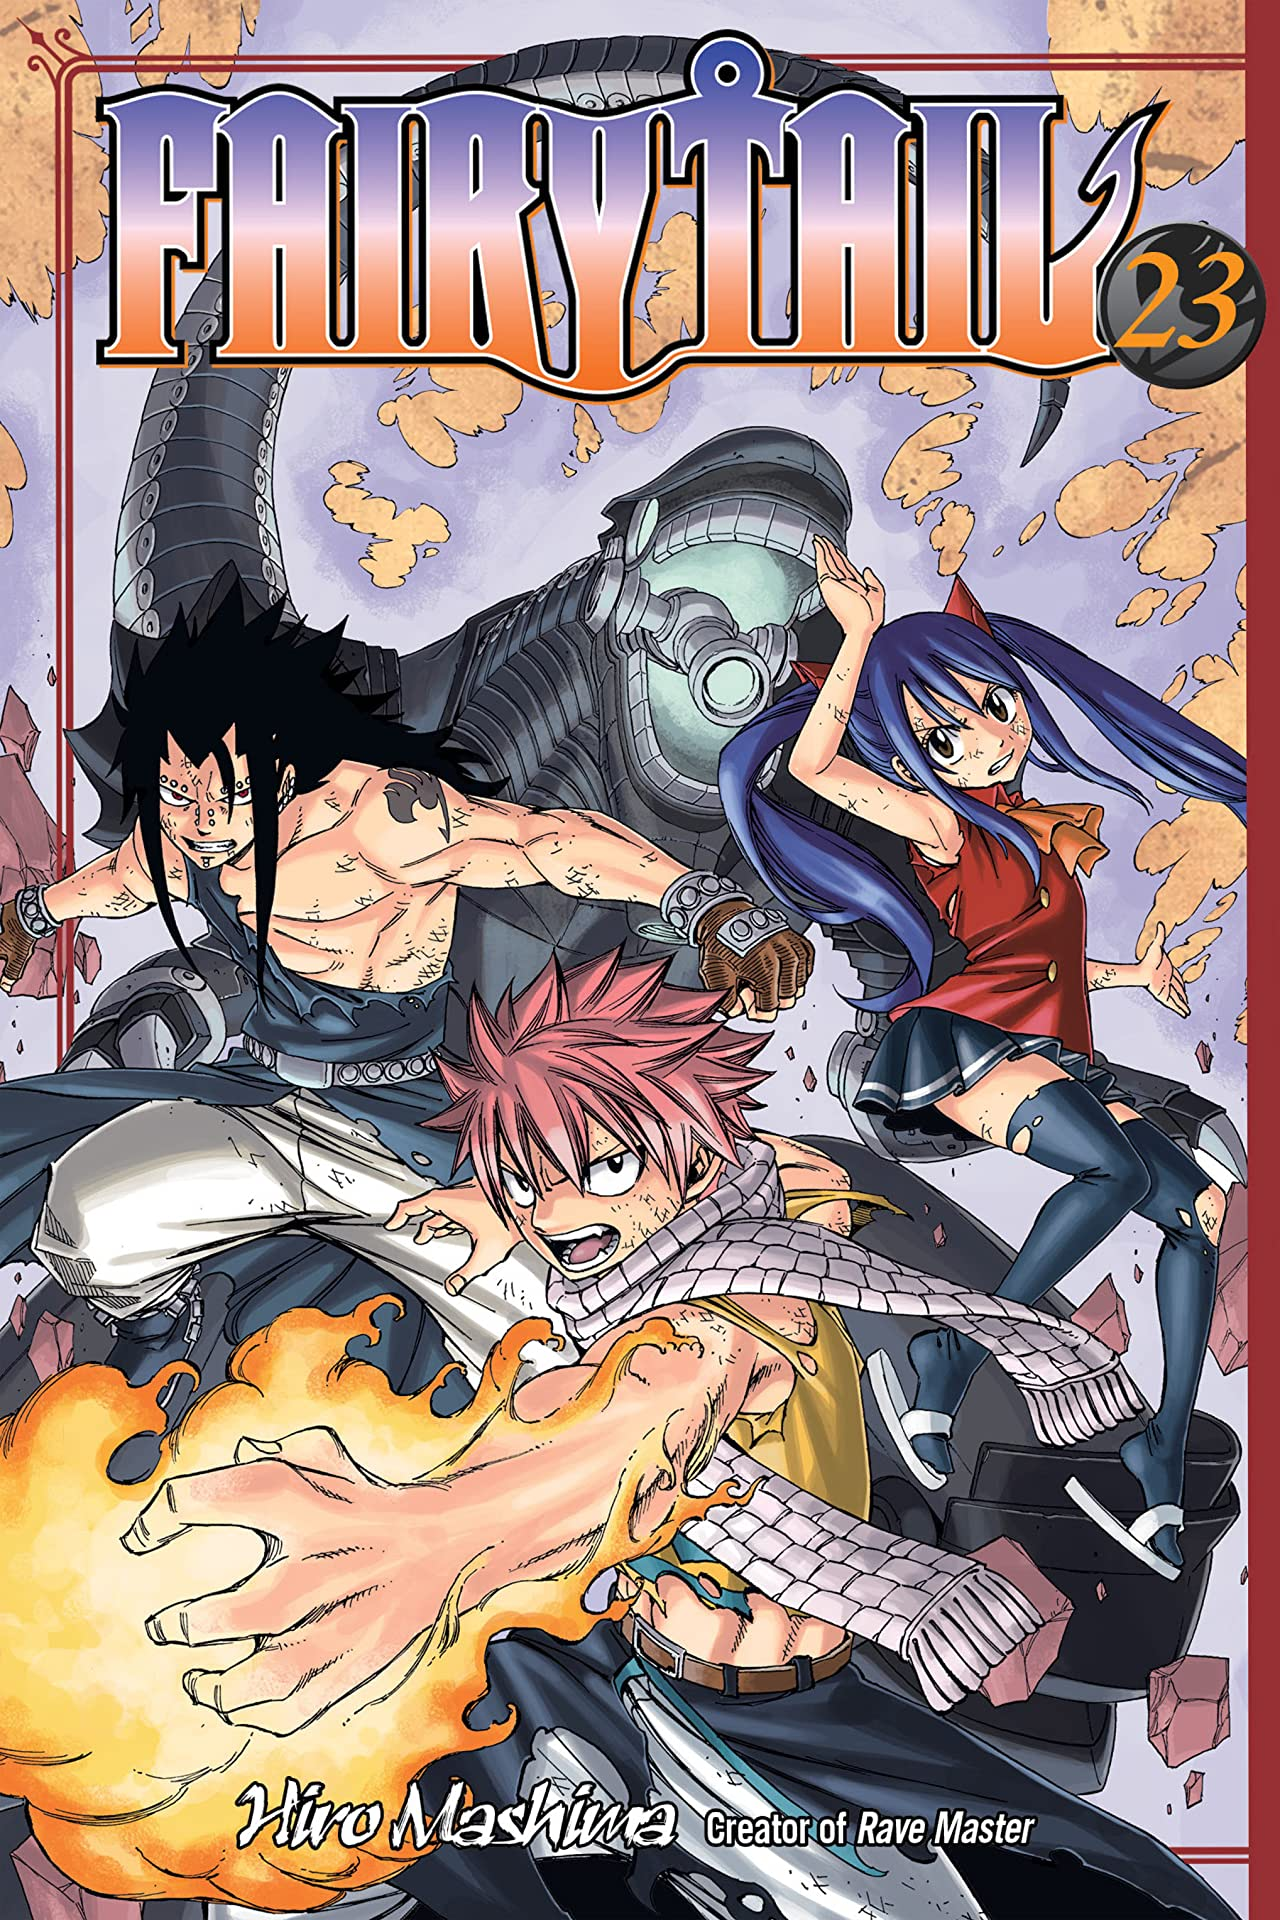 Fairy Tail Vol. 23